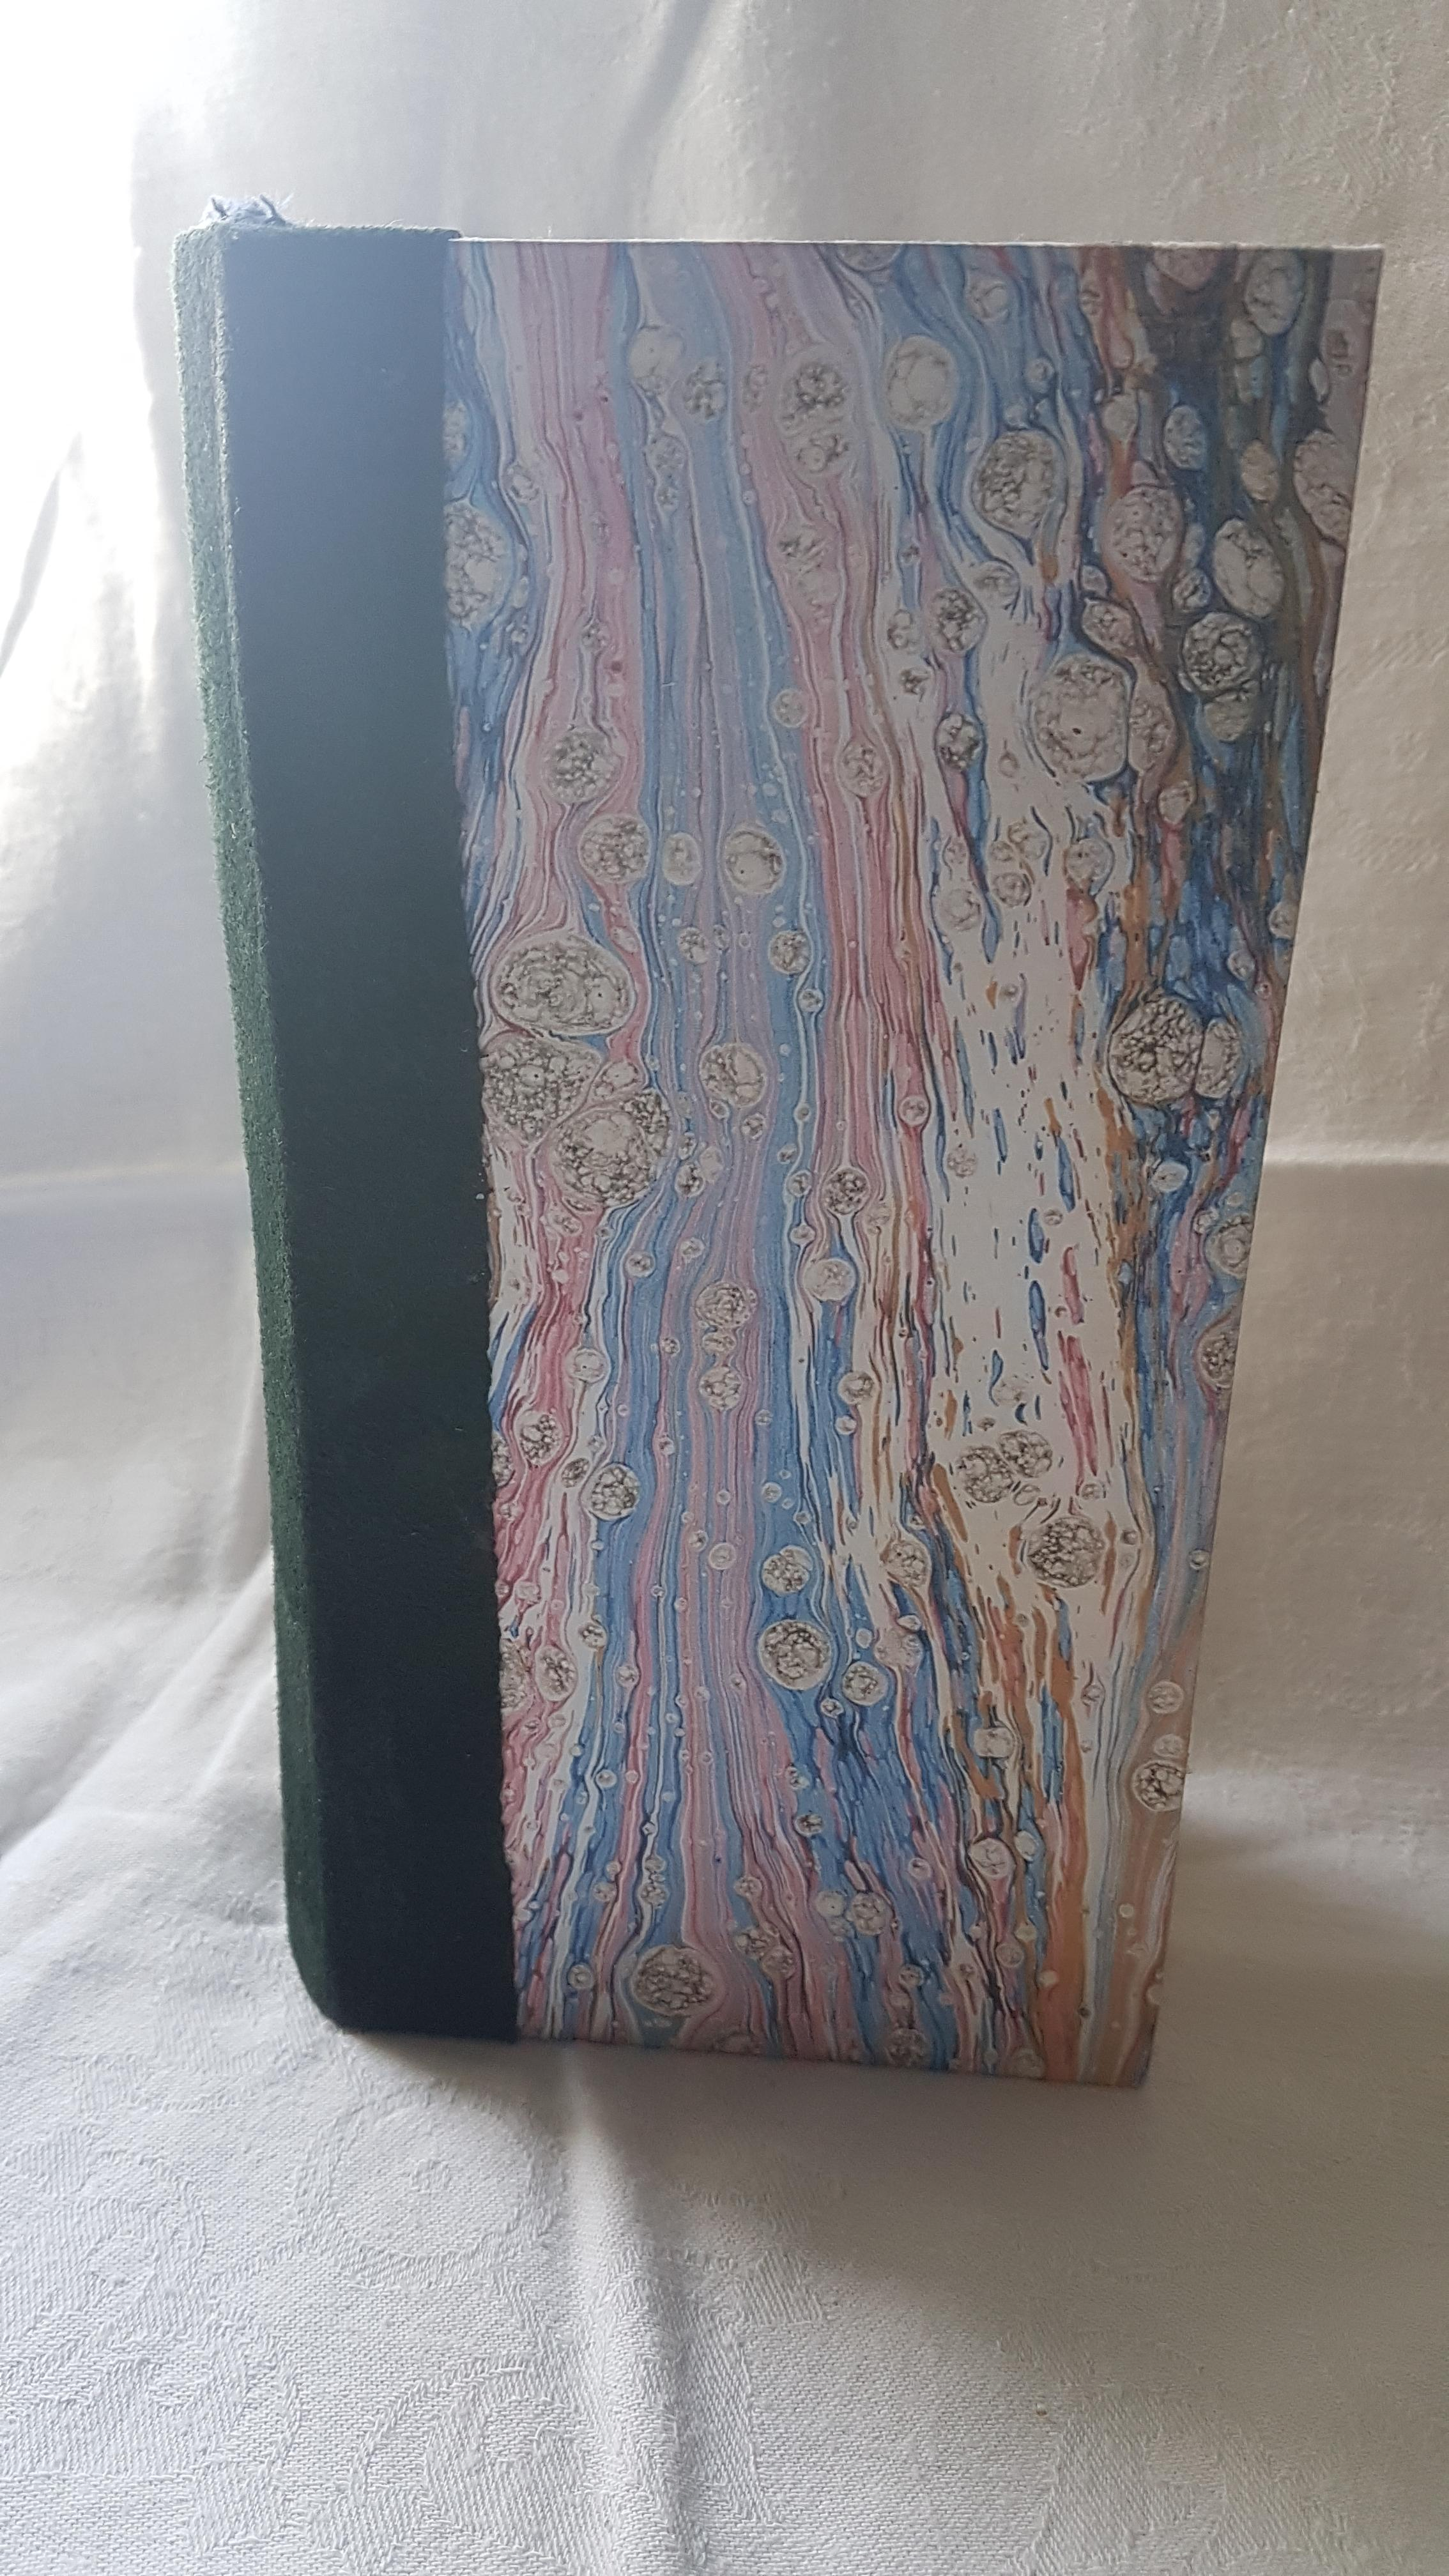 Marble print cover, plain page journal. - Sold